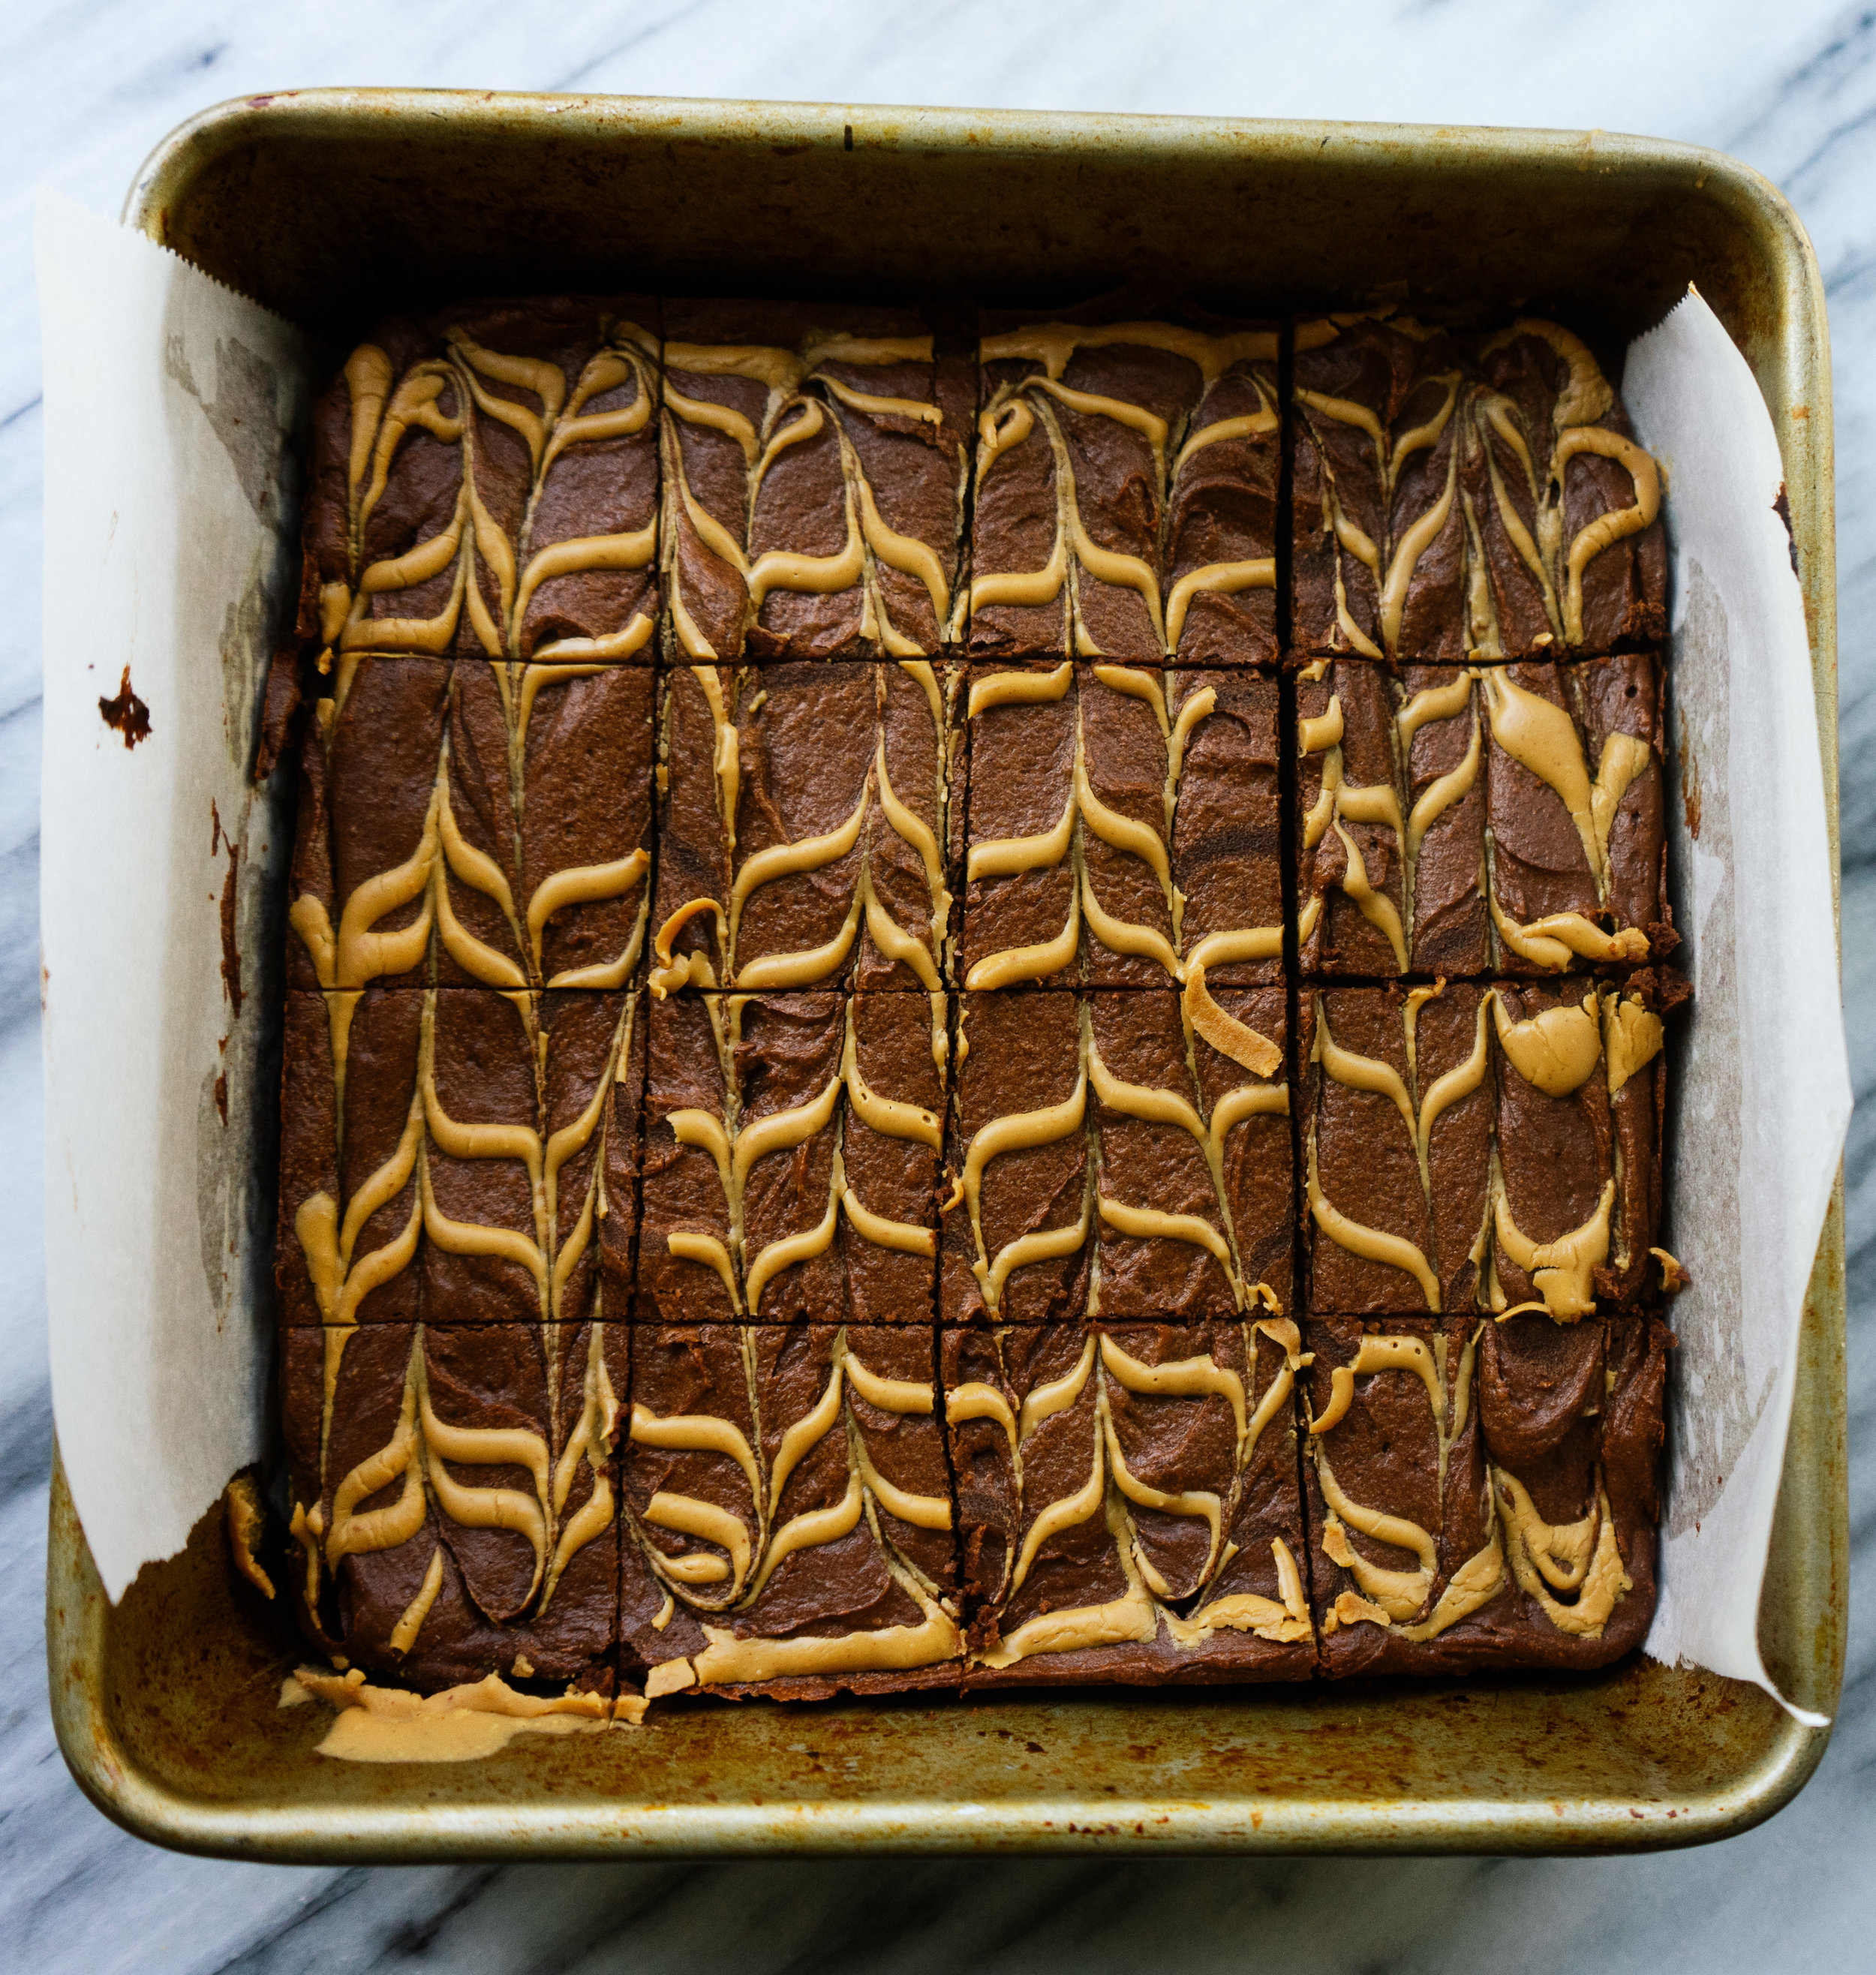 Flourless peanut butter brownies are a thick, fudgy and delicious paleo treat. Made with sweet potato and other healthy ingredients this grain free dessert is easy to make for a tasty and healthy paleo treat!